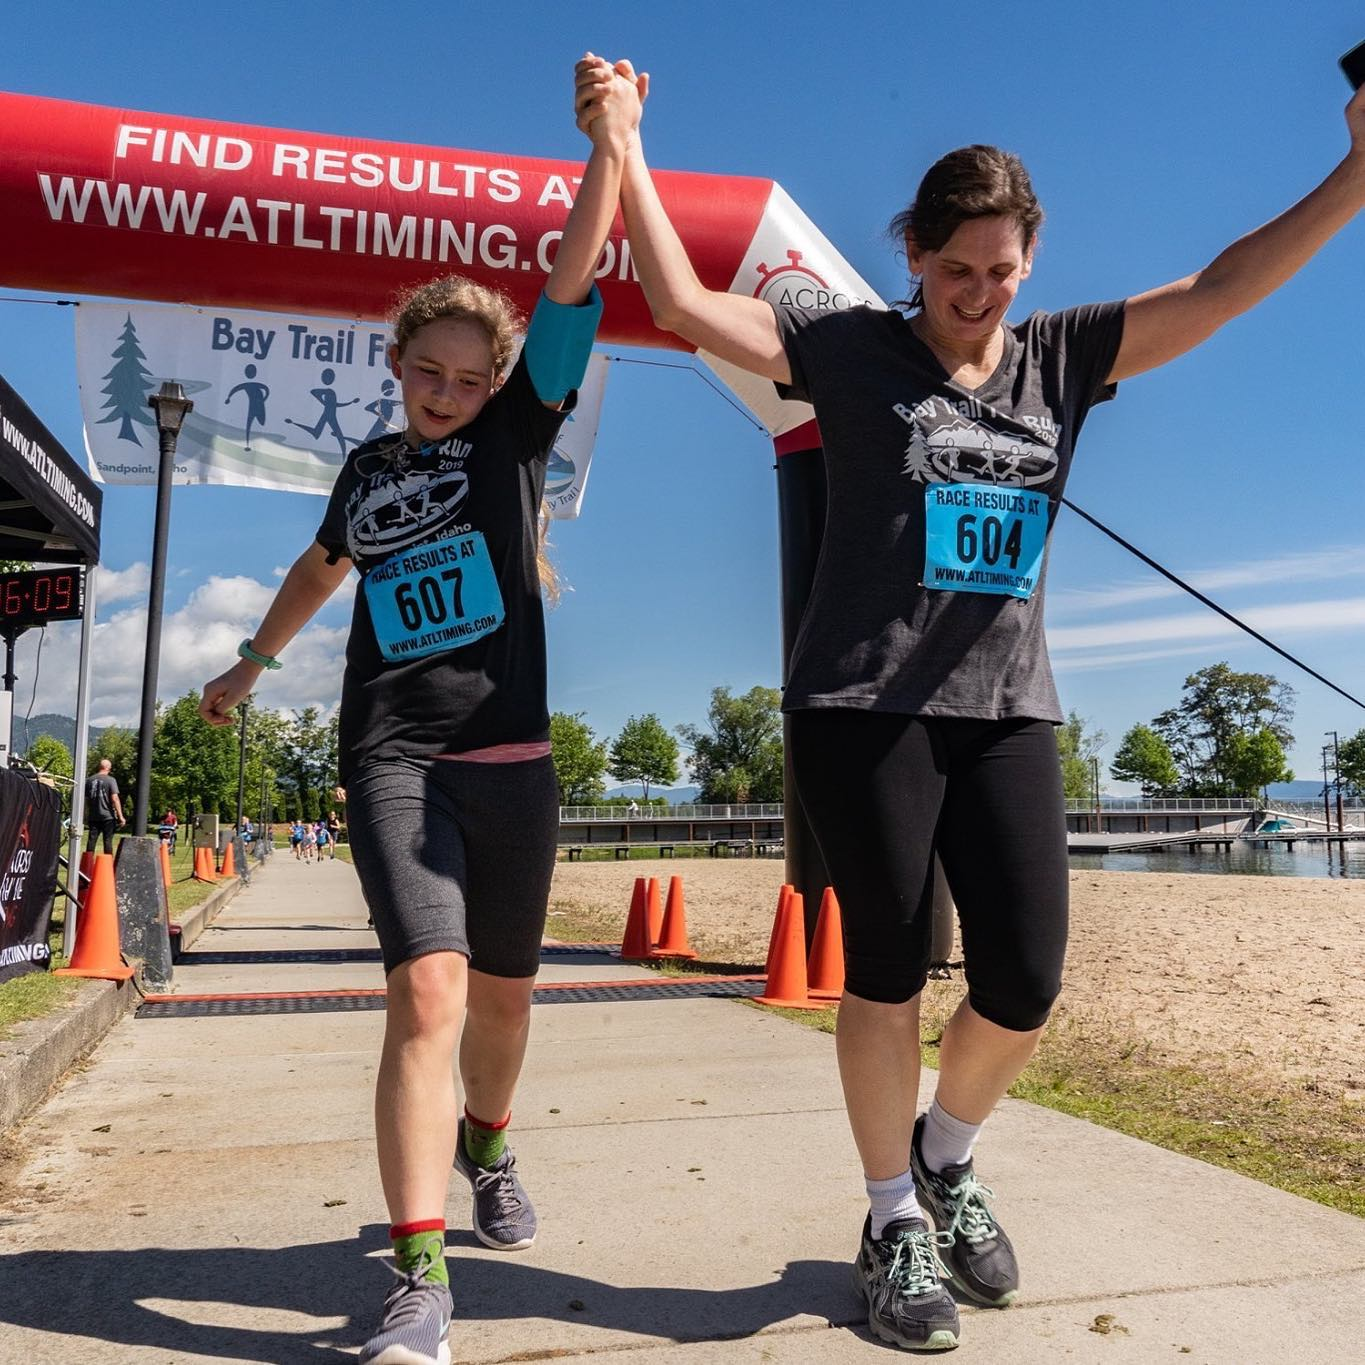 A mother and daughter crossing the finish line of a fun run.